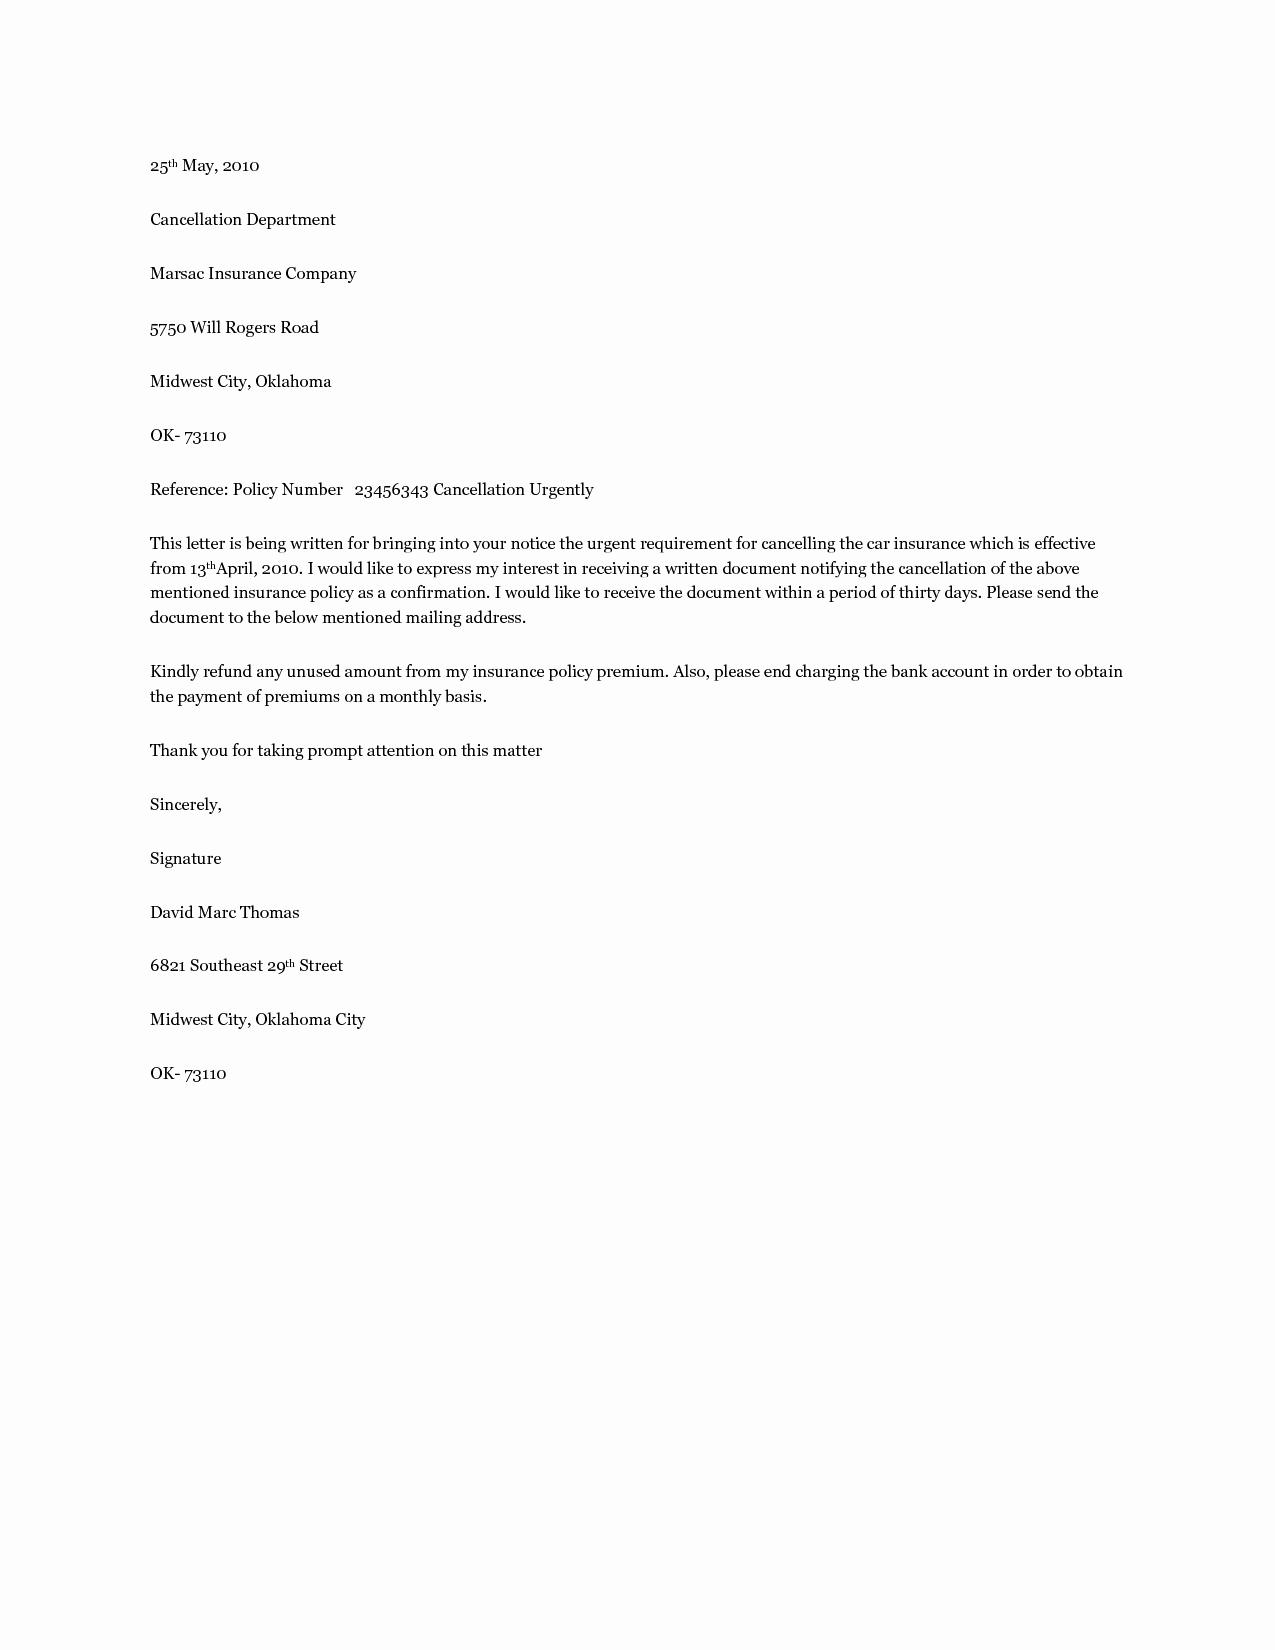 Insurance Policy Cancellation Letter Template - Life Insurance Policy Template Unique Letter to Cancel Insurance